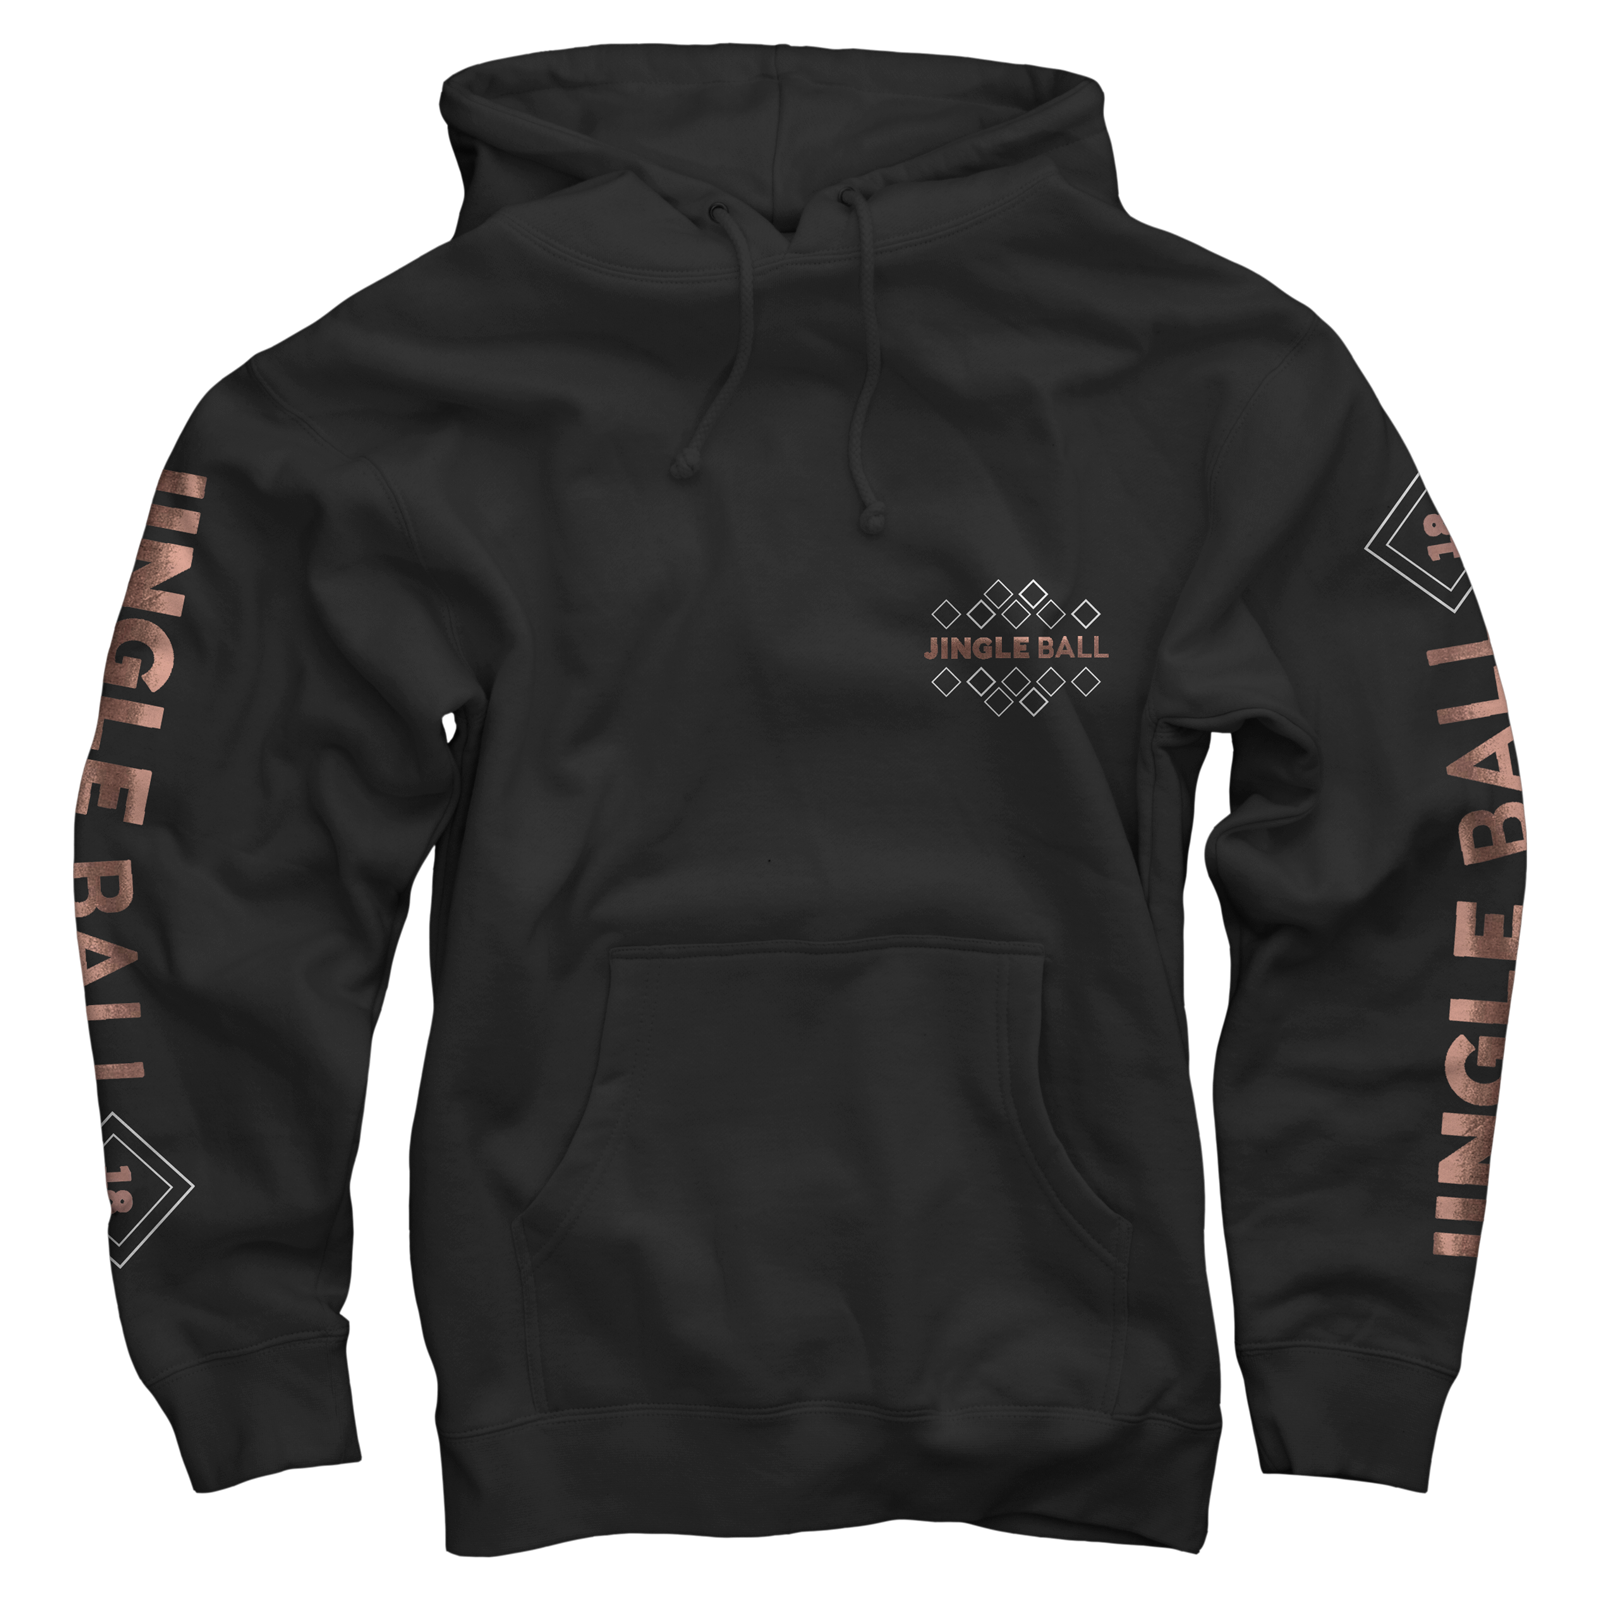 2018 Jingle Ball Tour Pullover